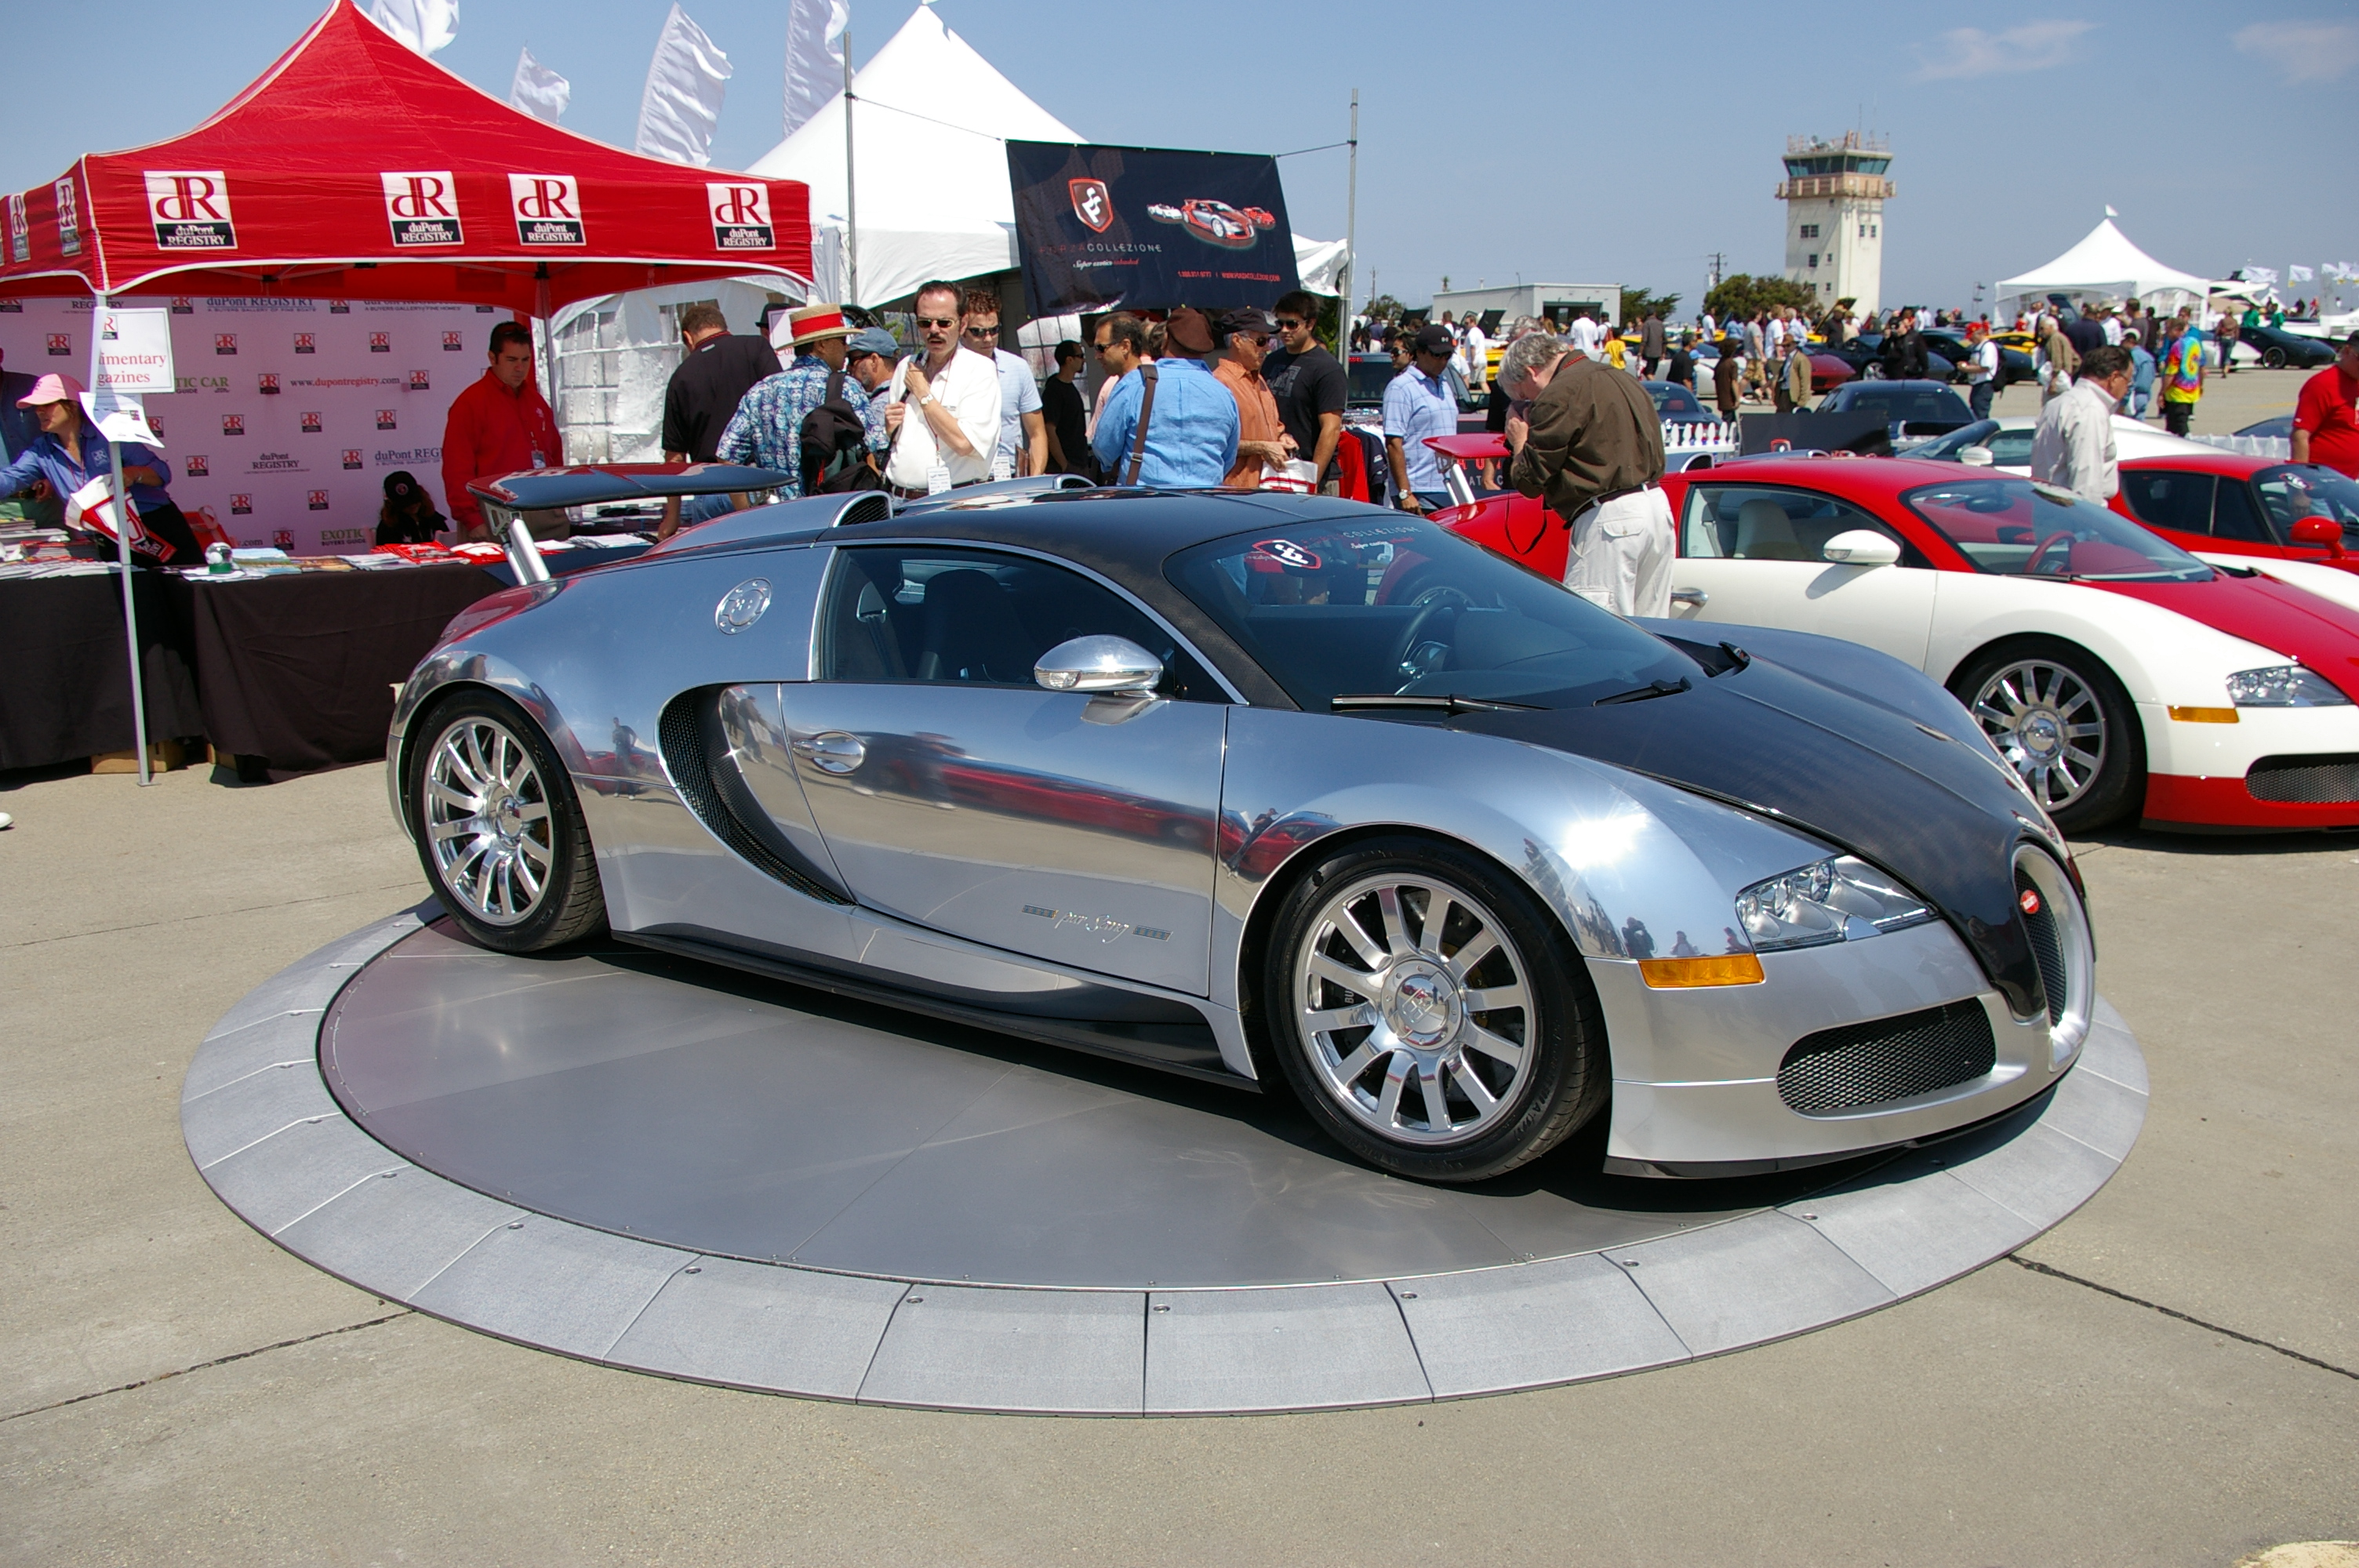 2019 Bugatti Veyron Pur Sang photo - 6